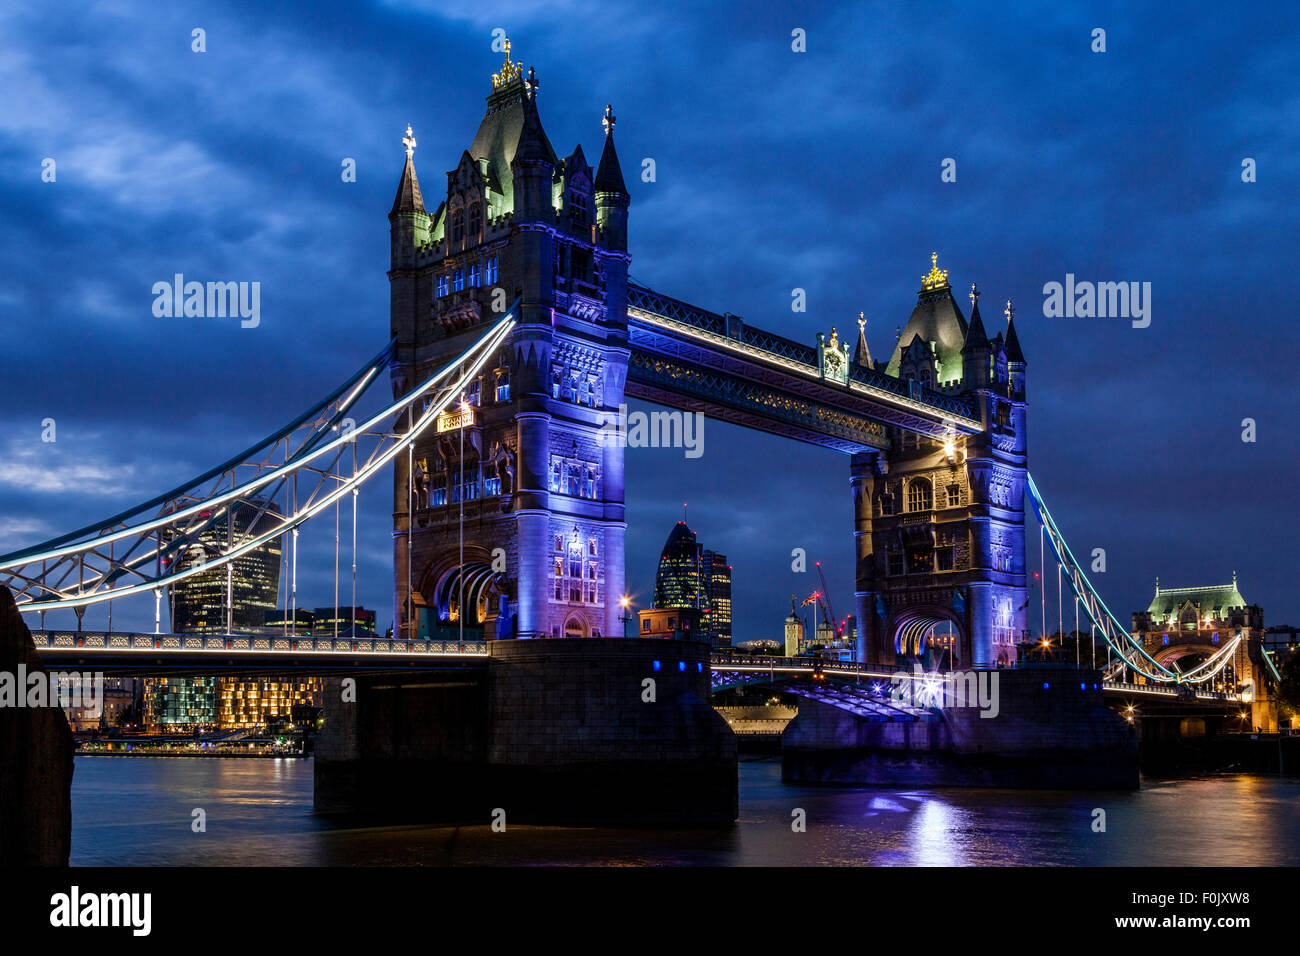 Tower Bridge, Londres, Inglaterra Imagen De Stock